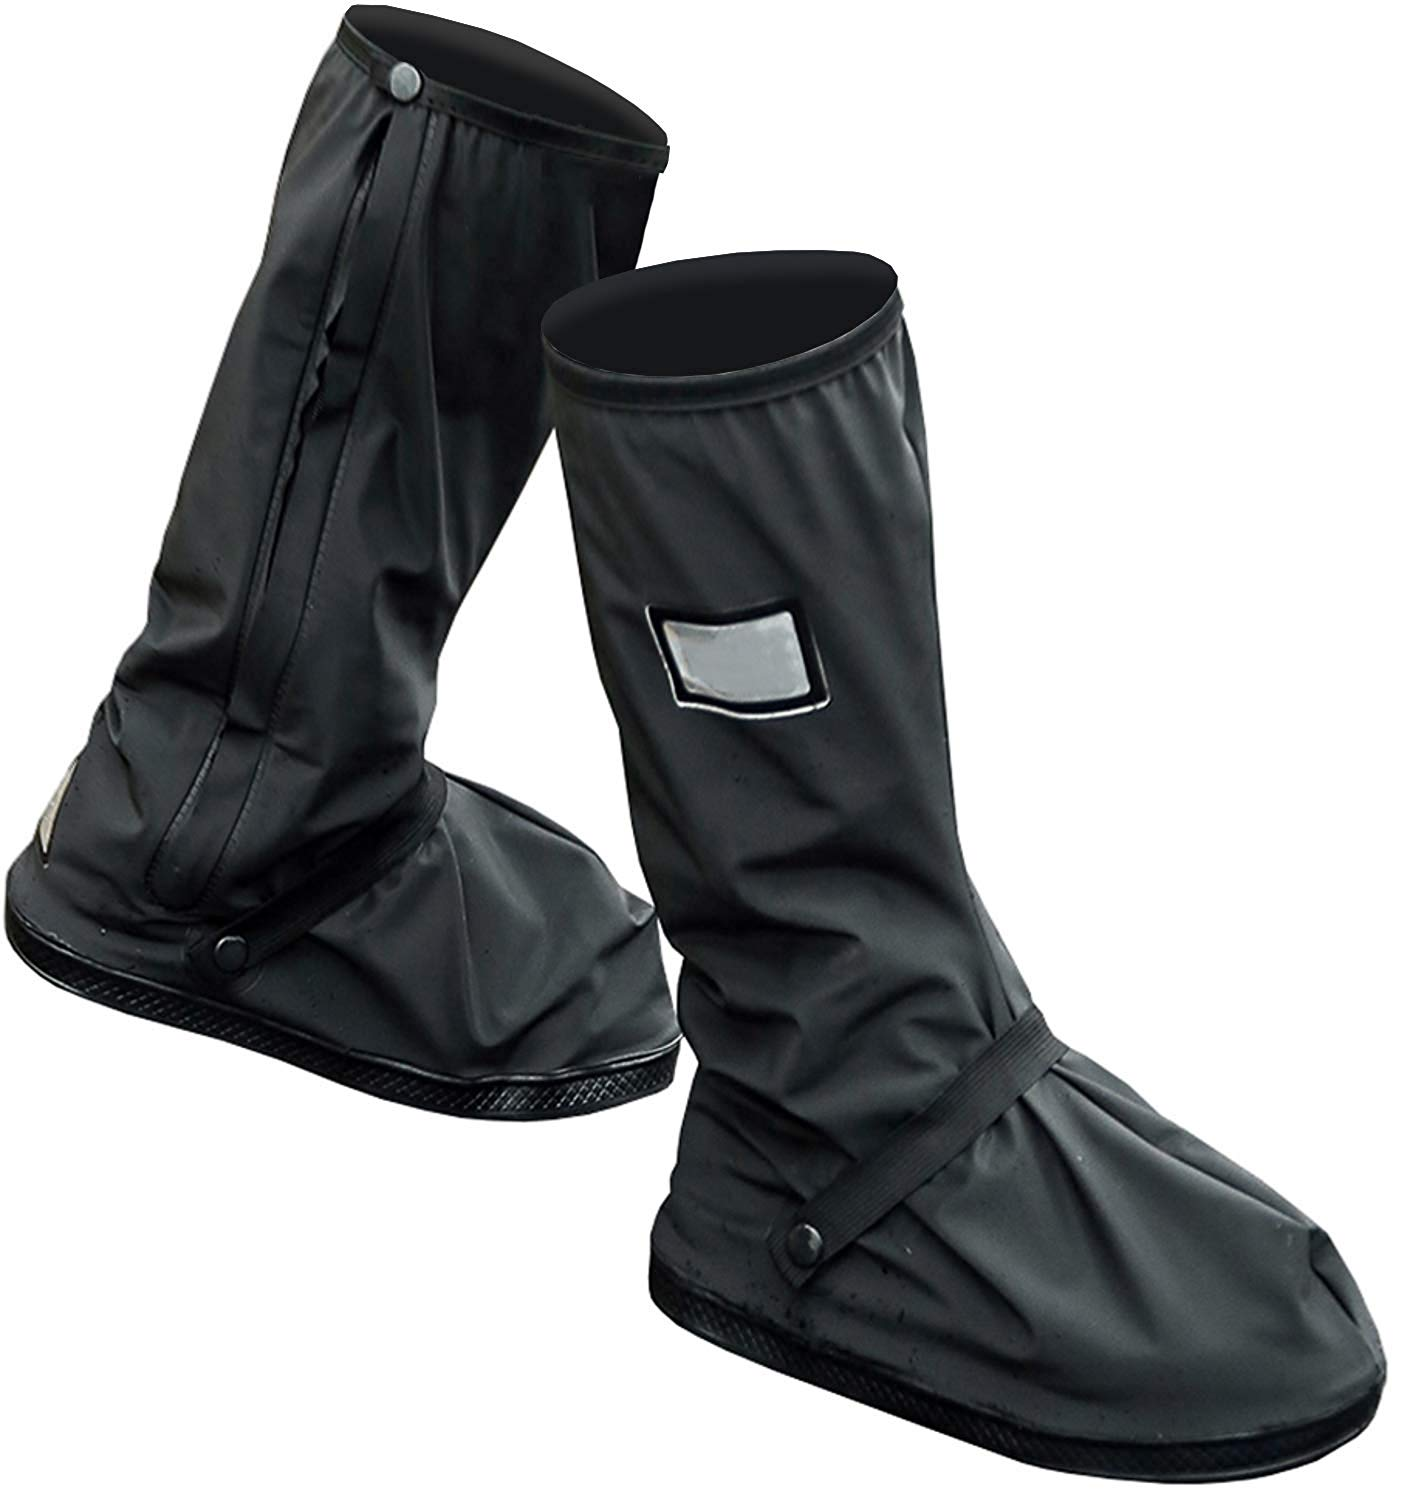 Yuding Black Rain Cover For Shoes Biker/men Rain Boots Waterproof Non-slip Cycling Rain Gear Protector Overshoes With Reflector